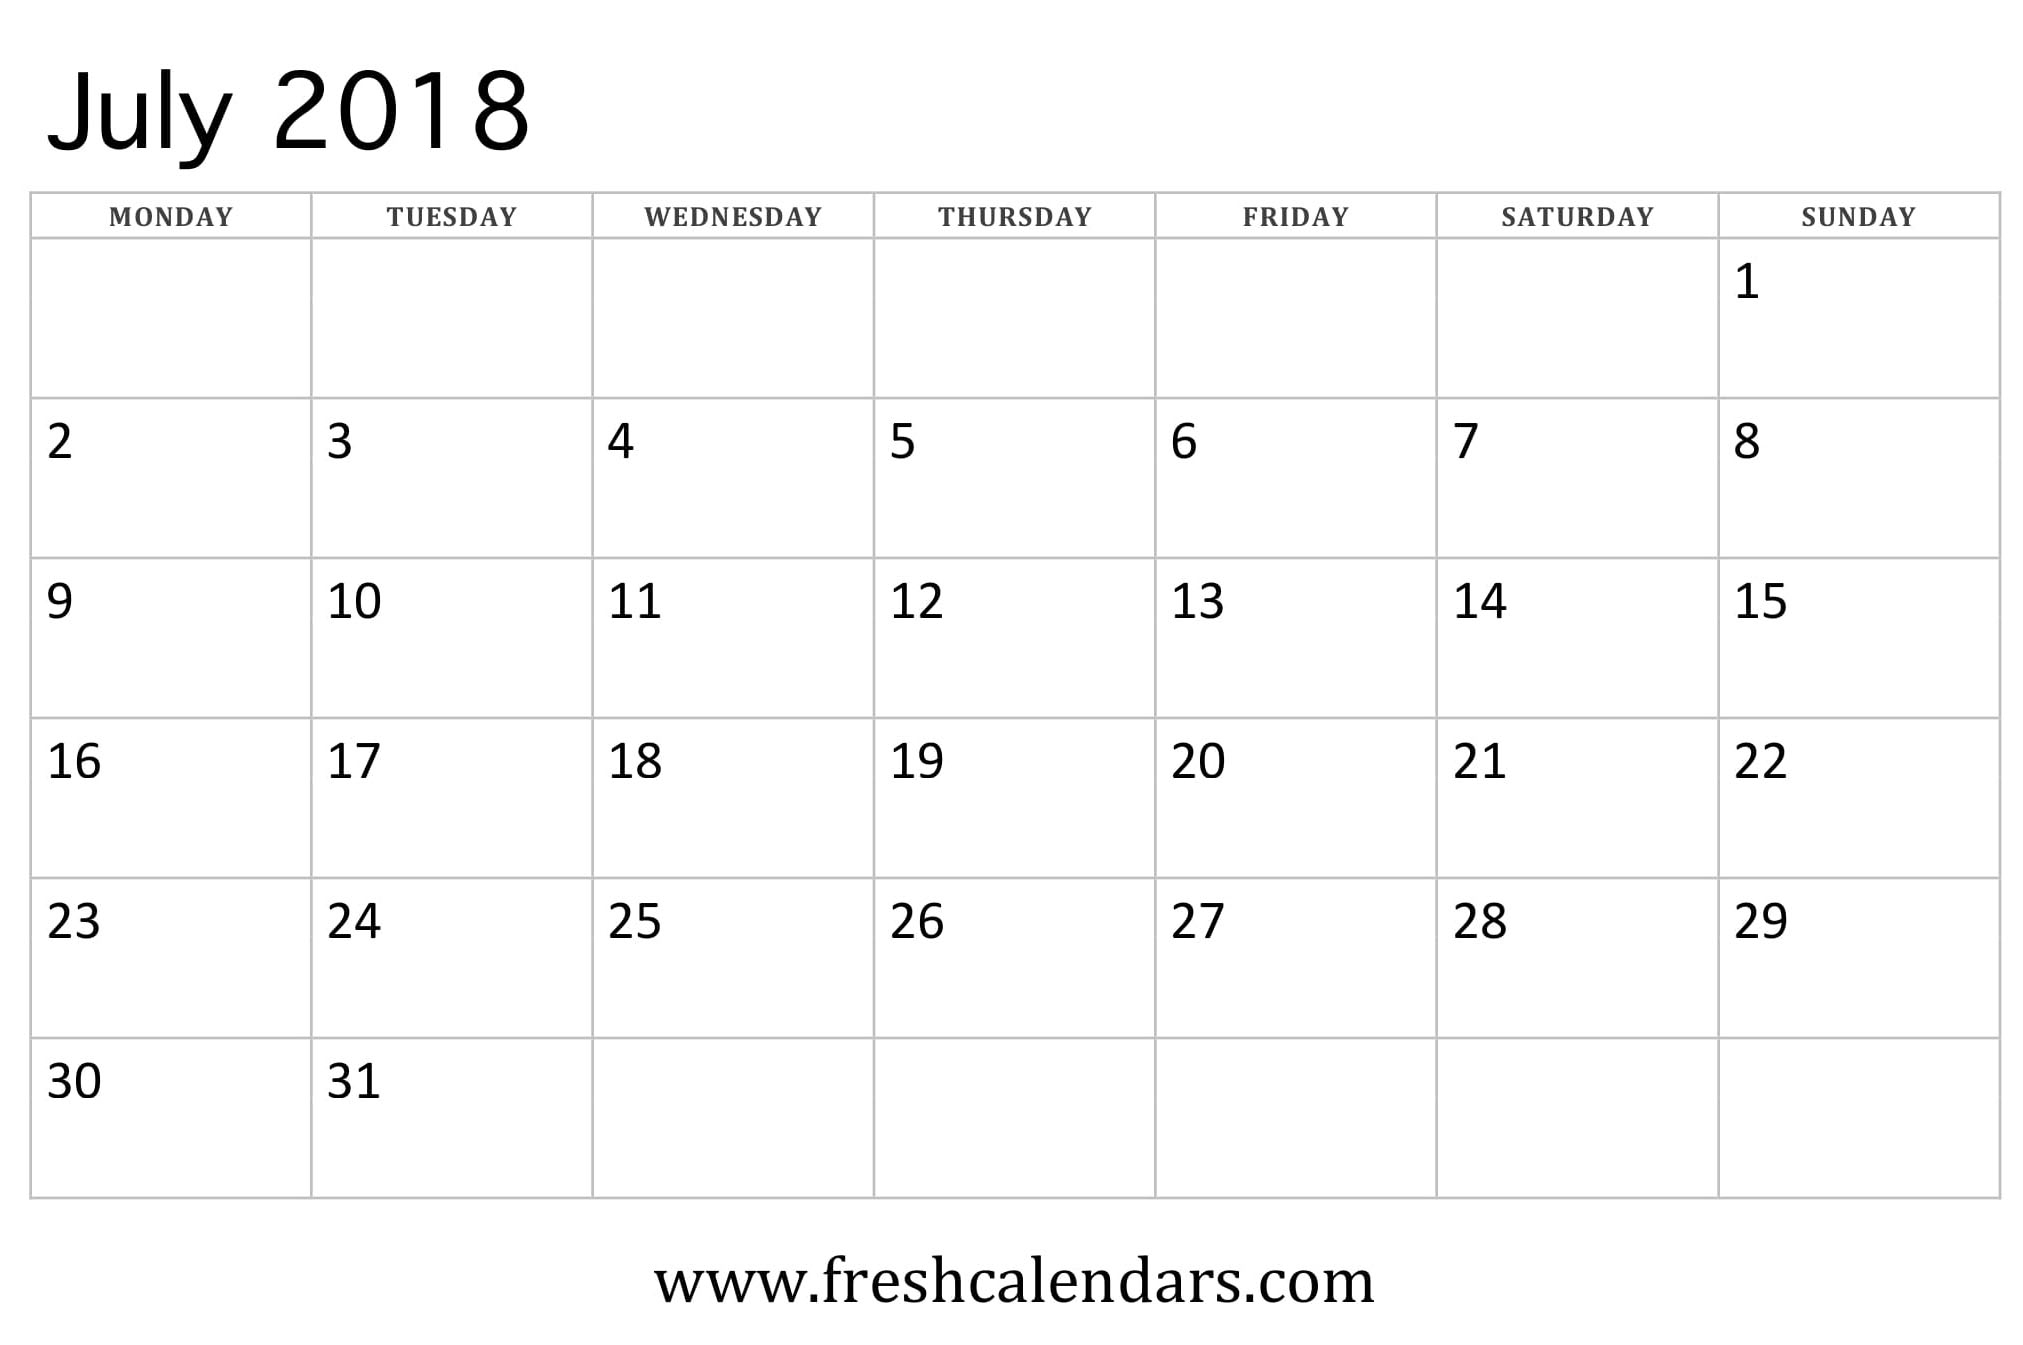 July 2018 Calendar Printable - Fresh Calendars